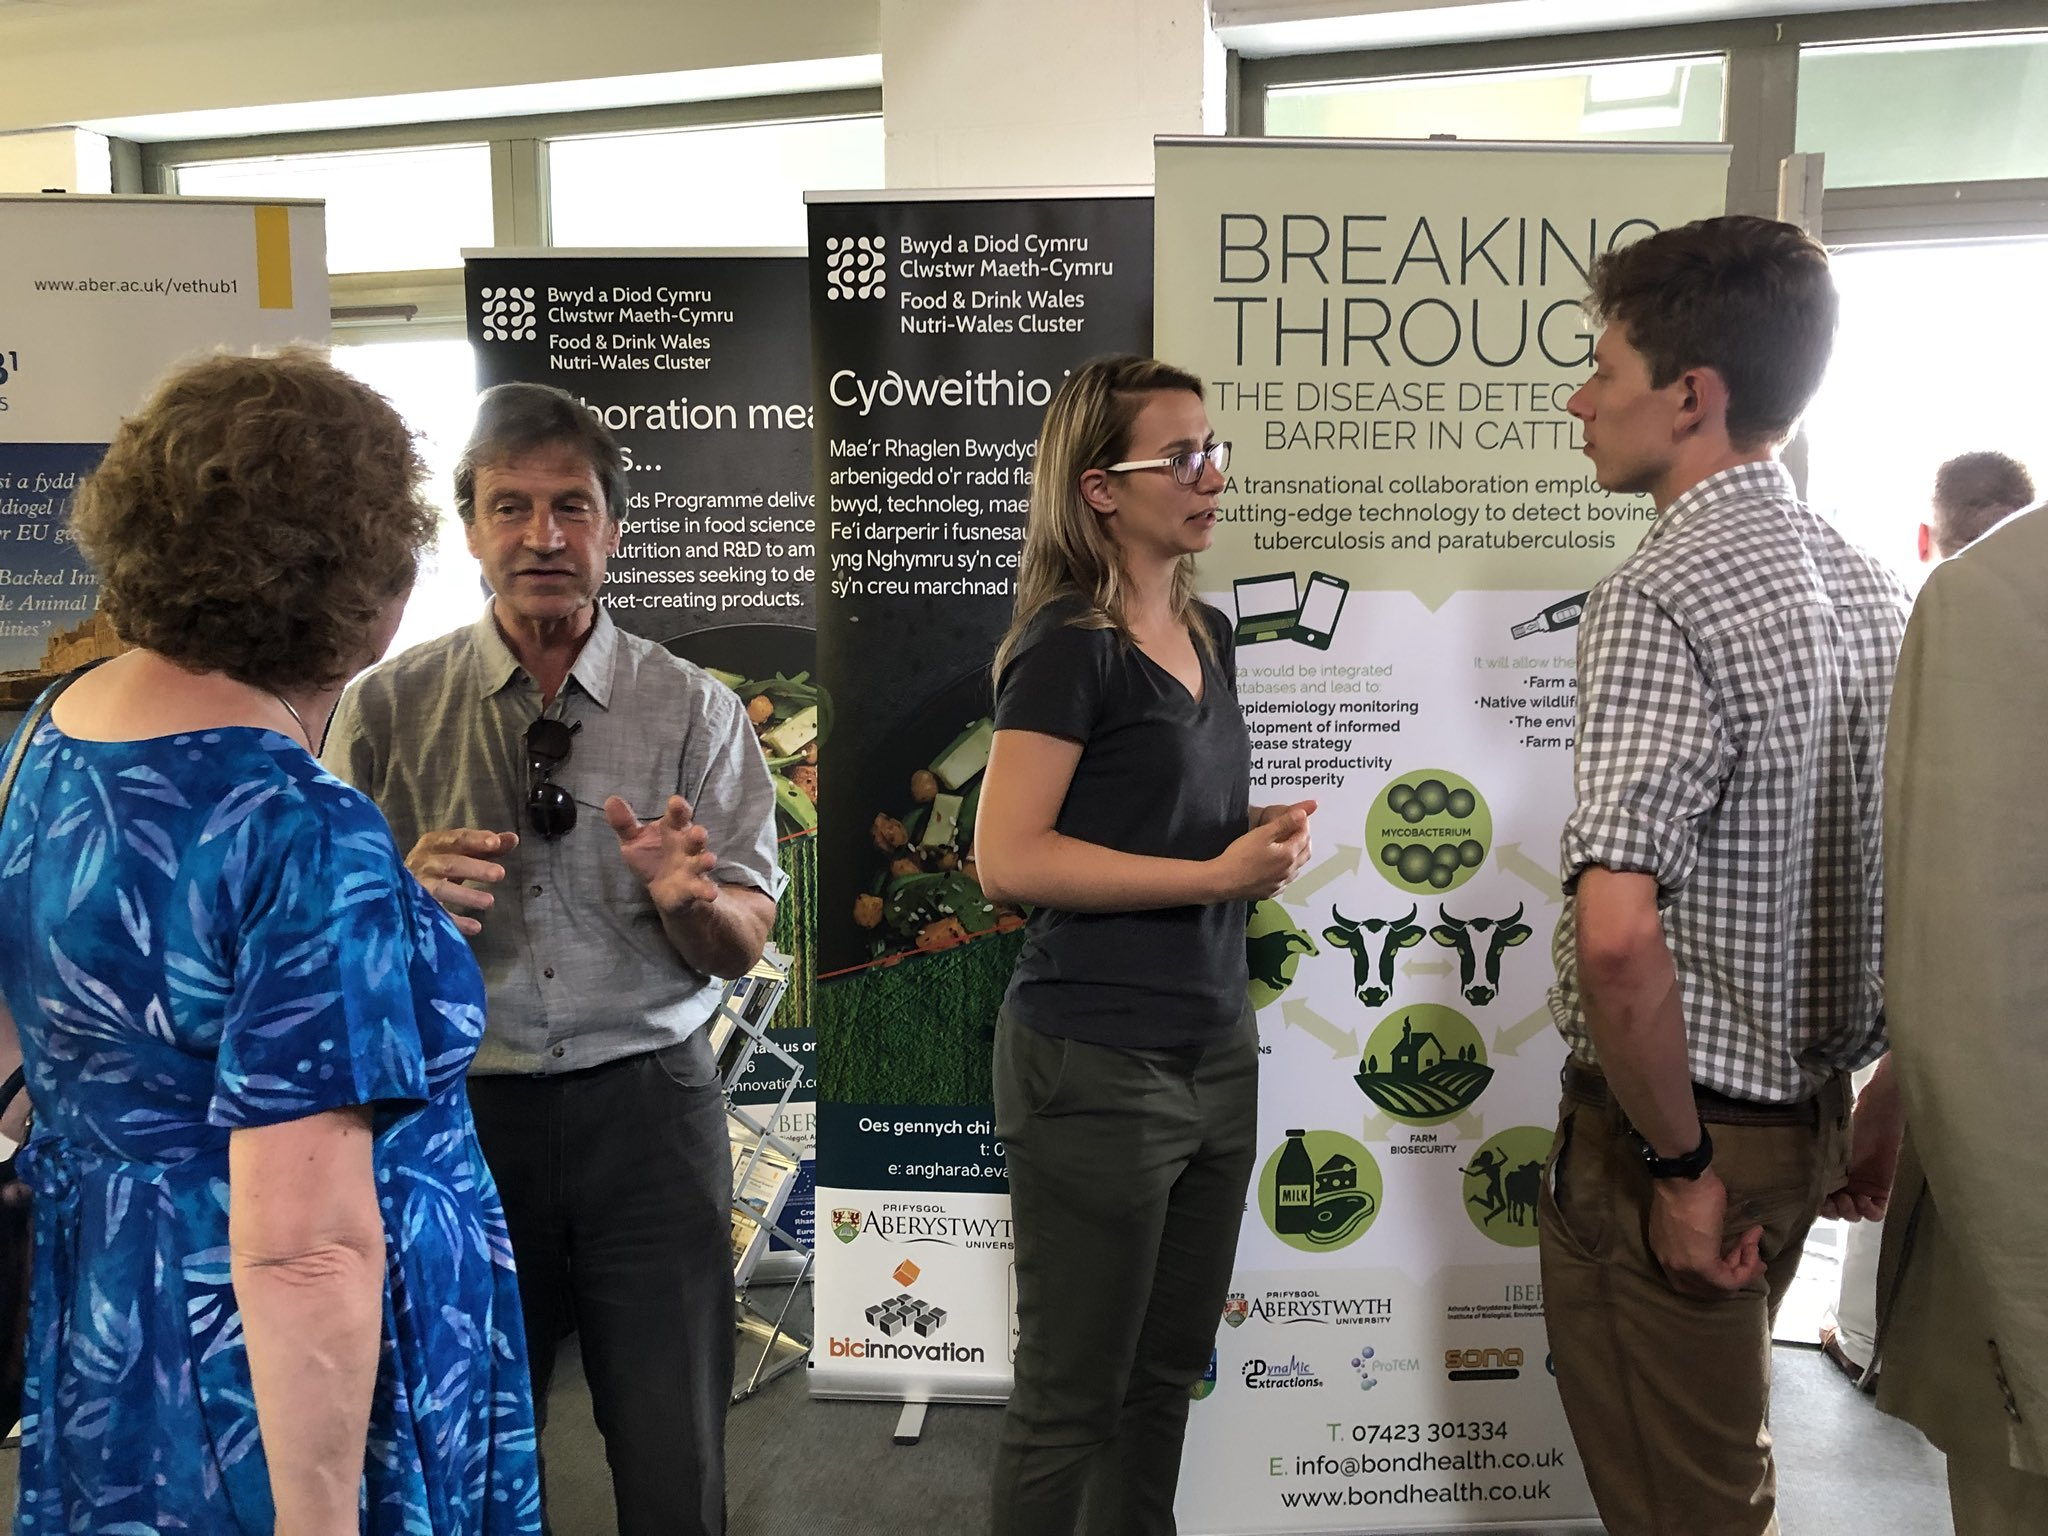 Discussing the technology of the TB test during the launch event at the Royal Welsh Agricultural Show 2018